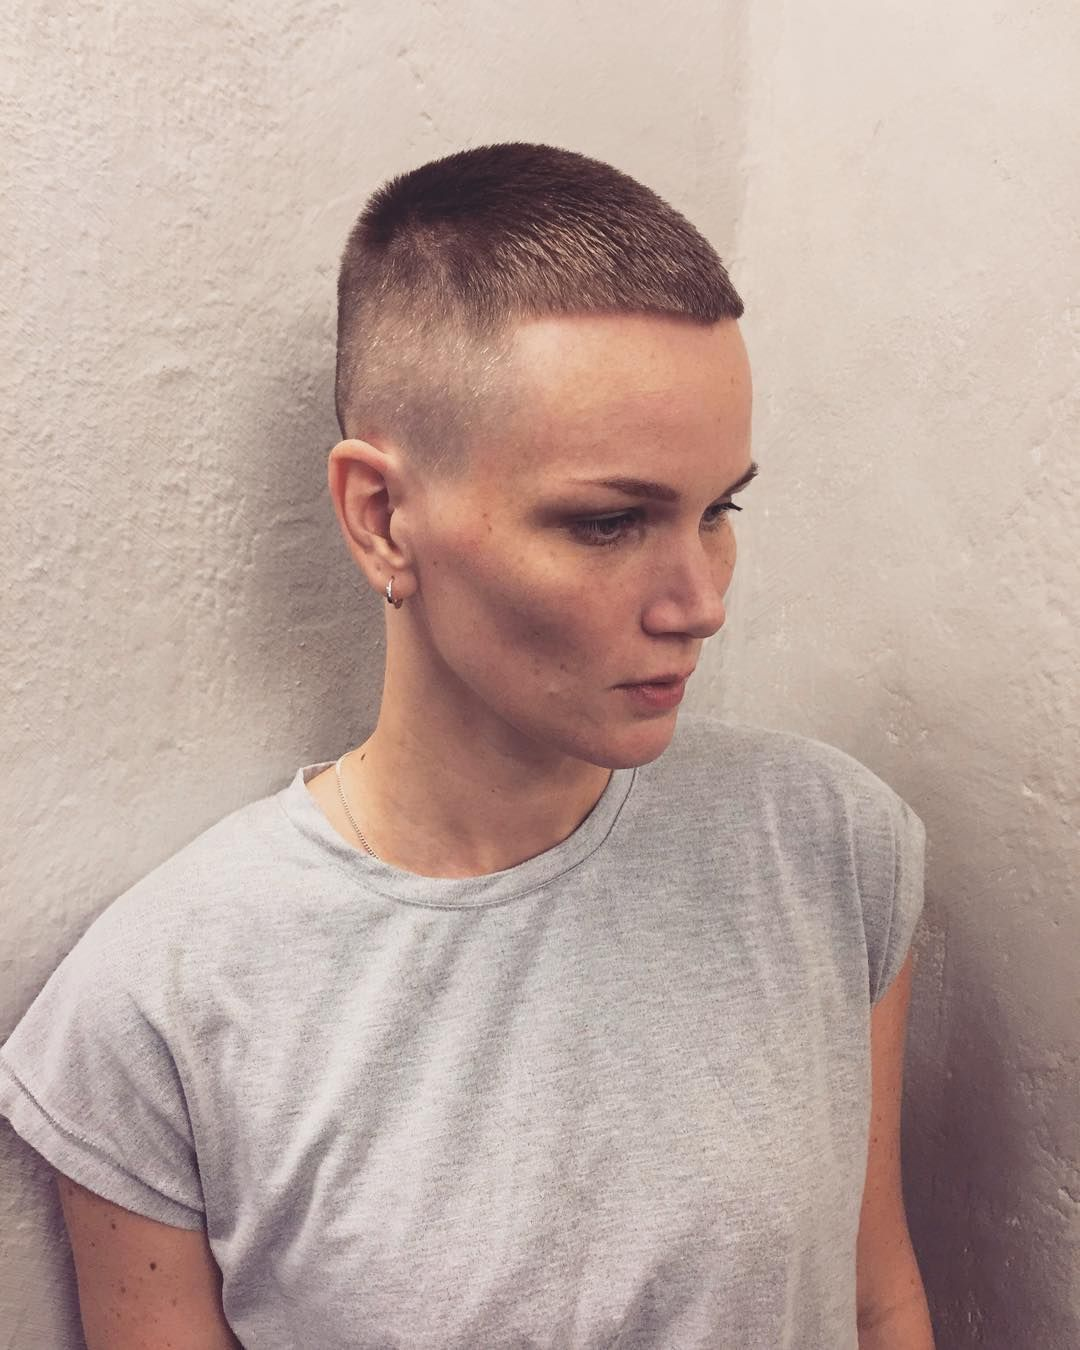 Woman With Buzzcut Military Haircut Buzzed 11 In 11 Hair